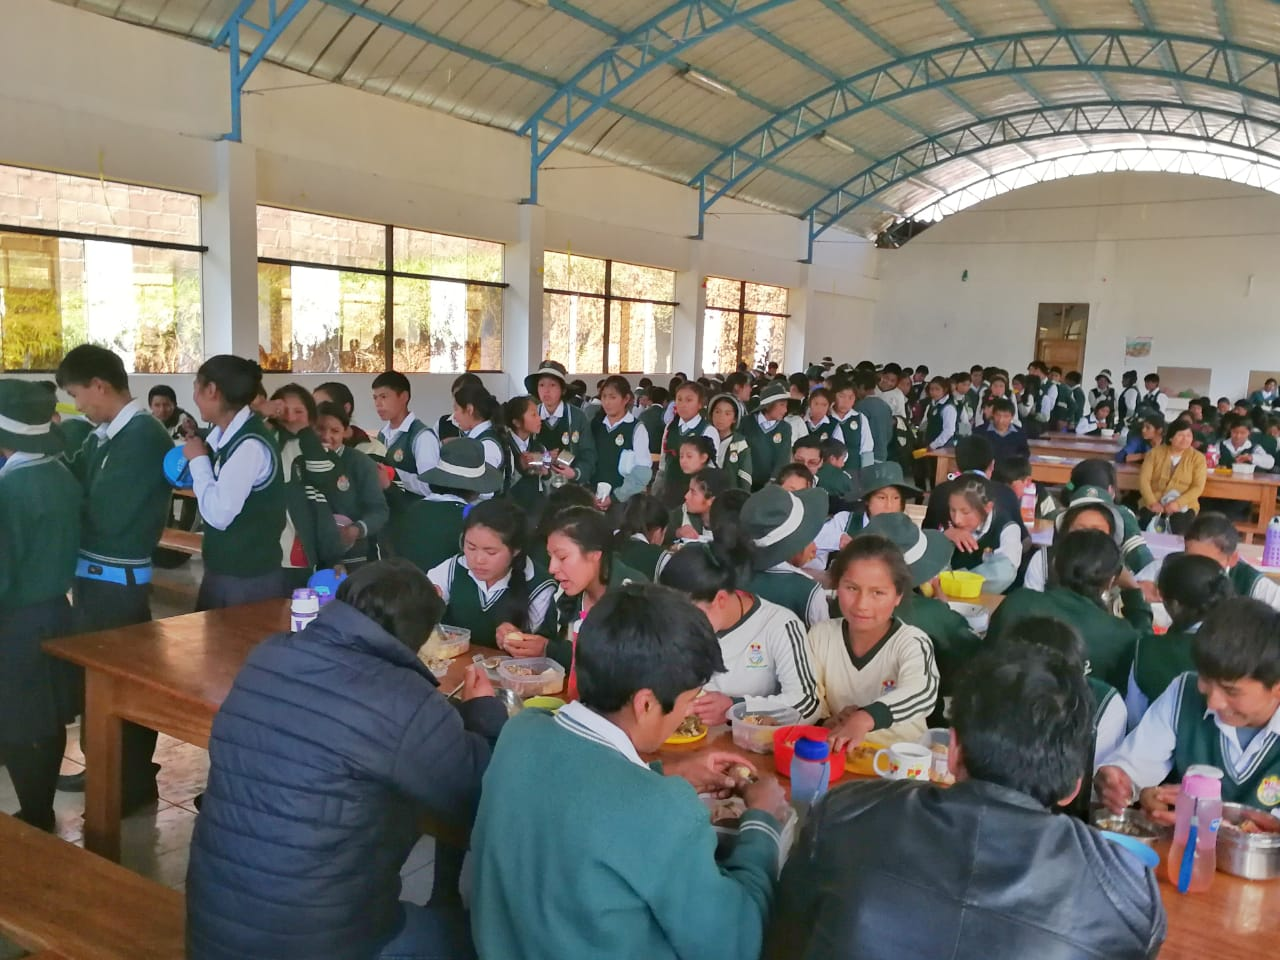 The young people enjoying their lunch in the Huanoquite secondary school